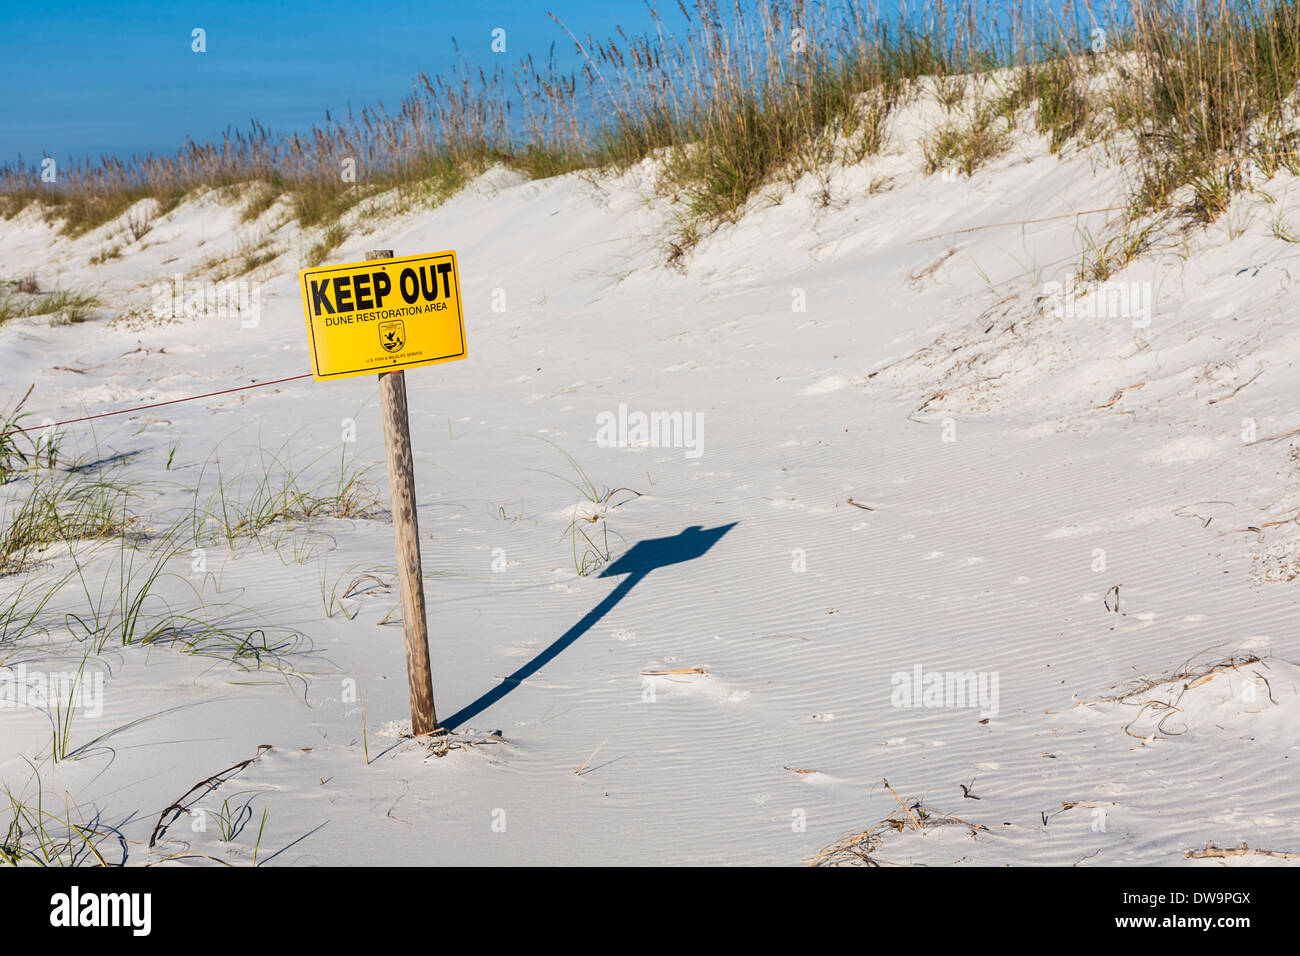 Sign warns to keep out of dune restoration area an beach at Gulf Shores, Alabama - Stock Image